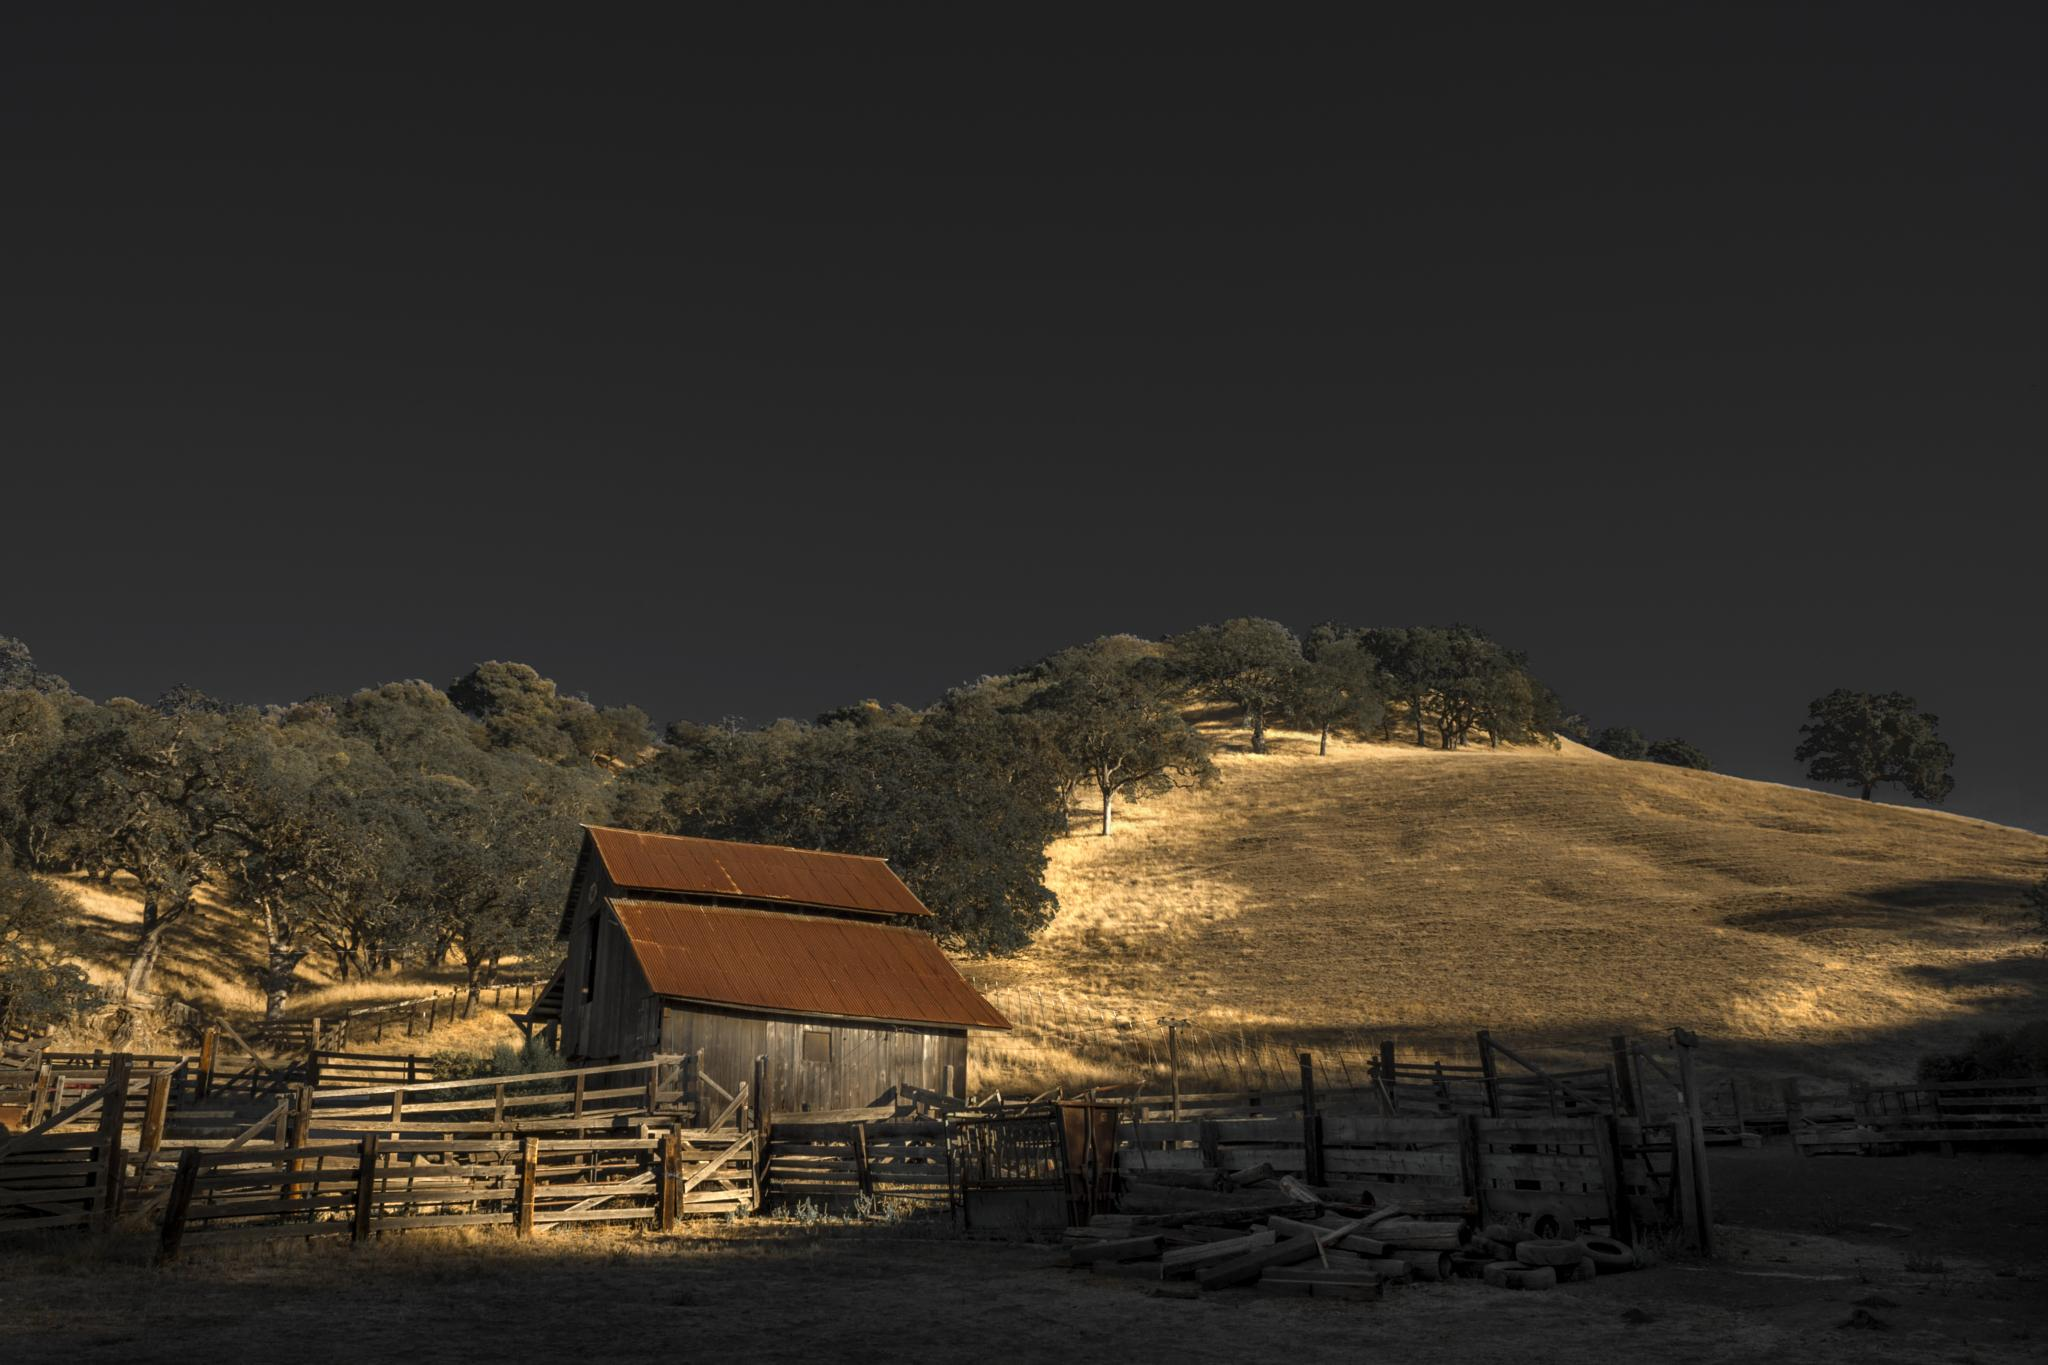 Borges Ranch by rhoulston